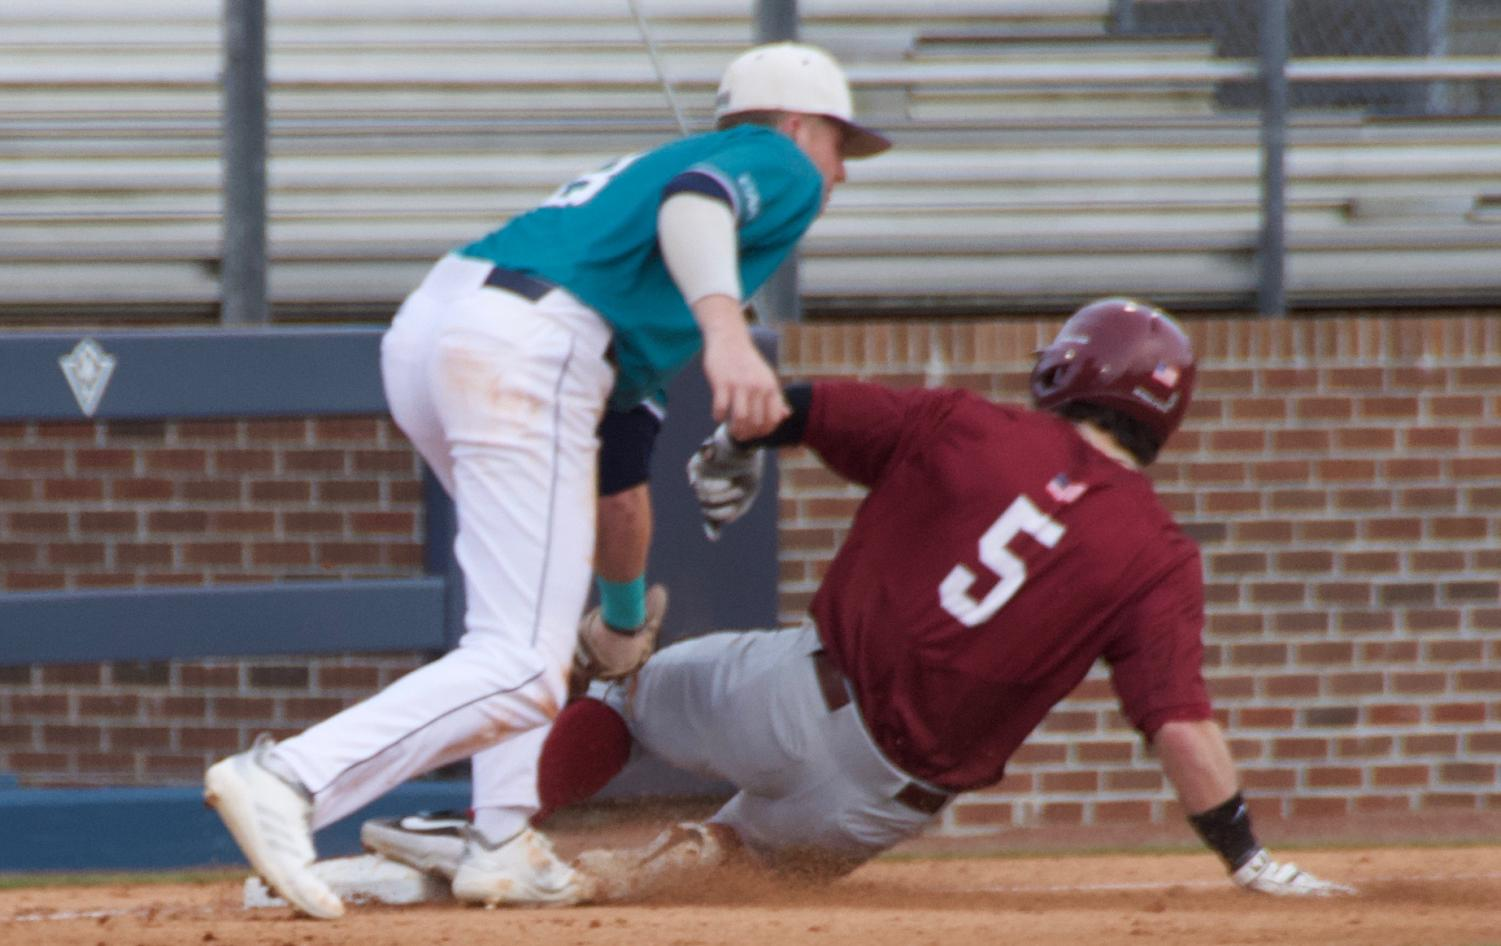 Cole Weiss (8) tags out Liam Bendo (5) during UNCW's season opener against St. Joseph on Feb. 15, 2019 at Brooks Field.